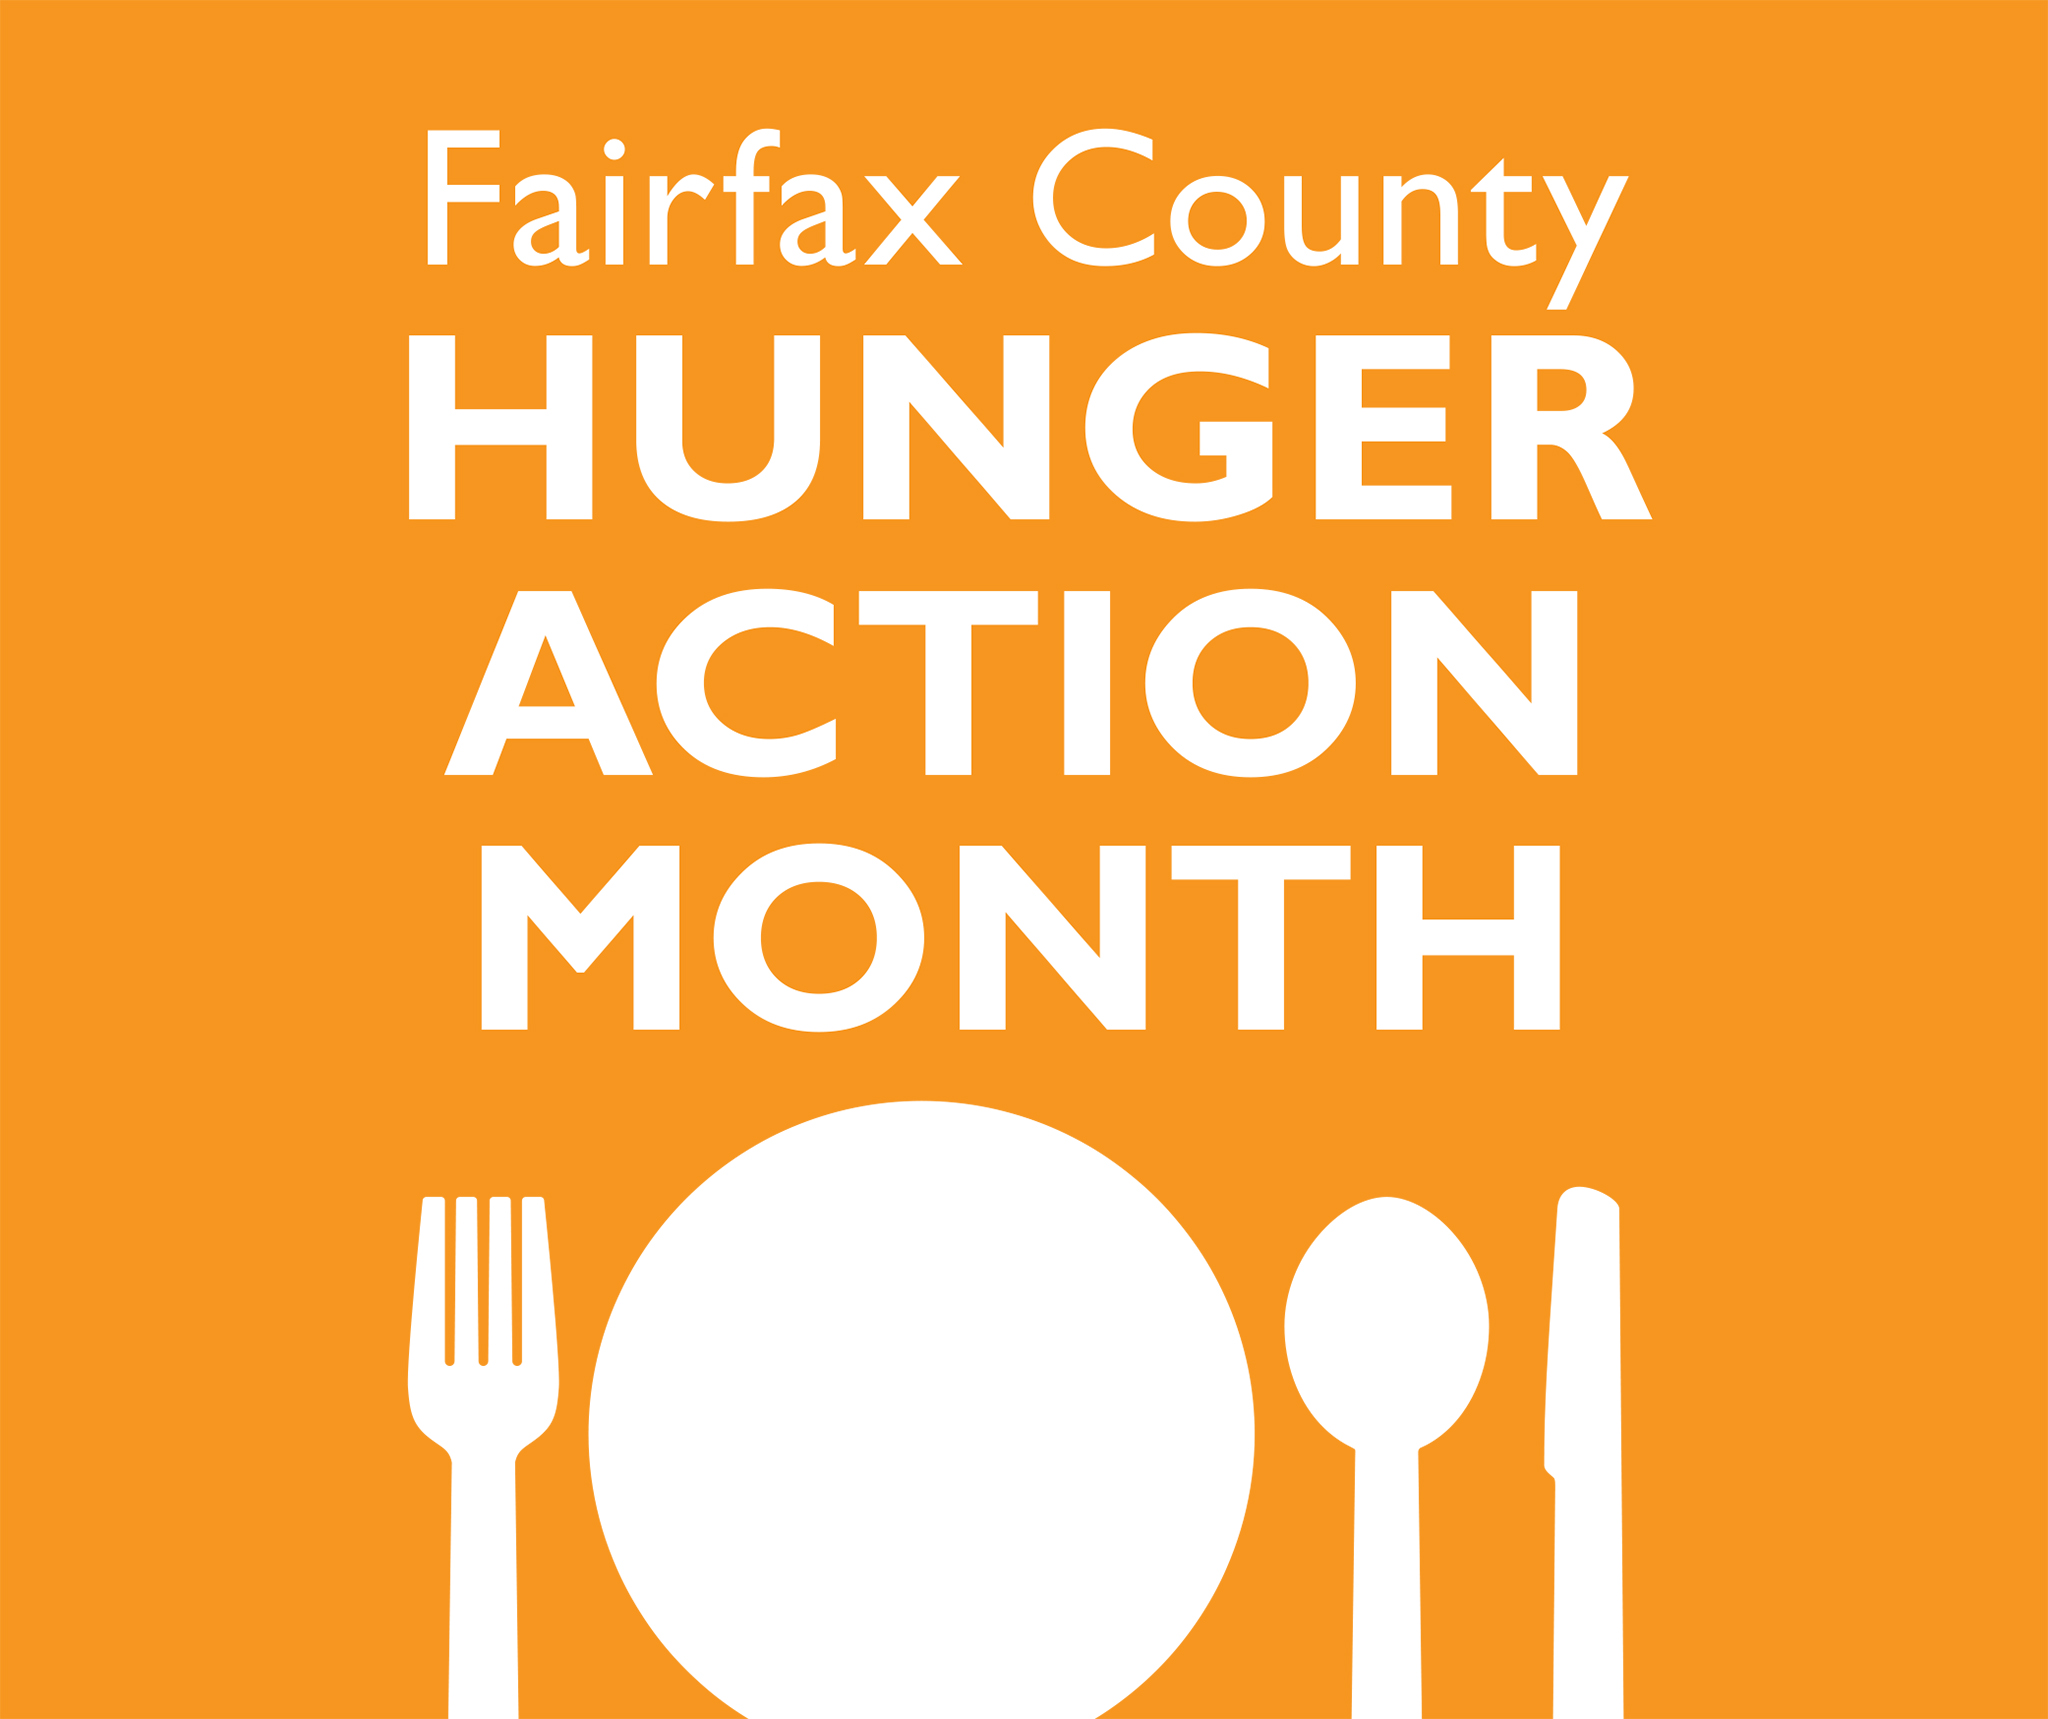 Fairfax County Hunger Action Month